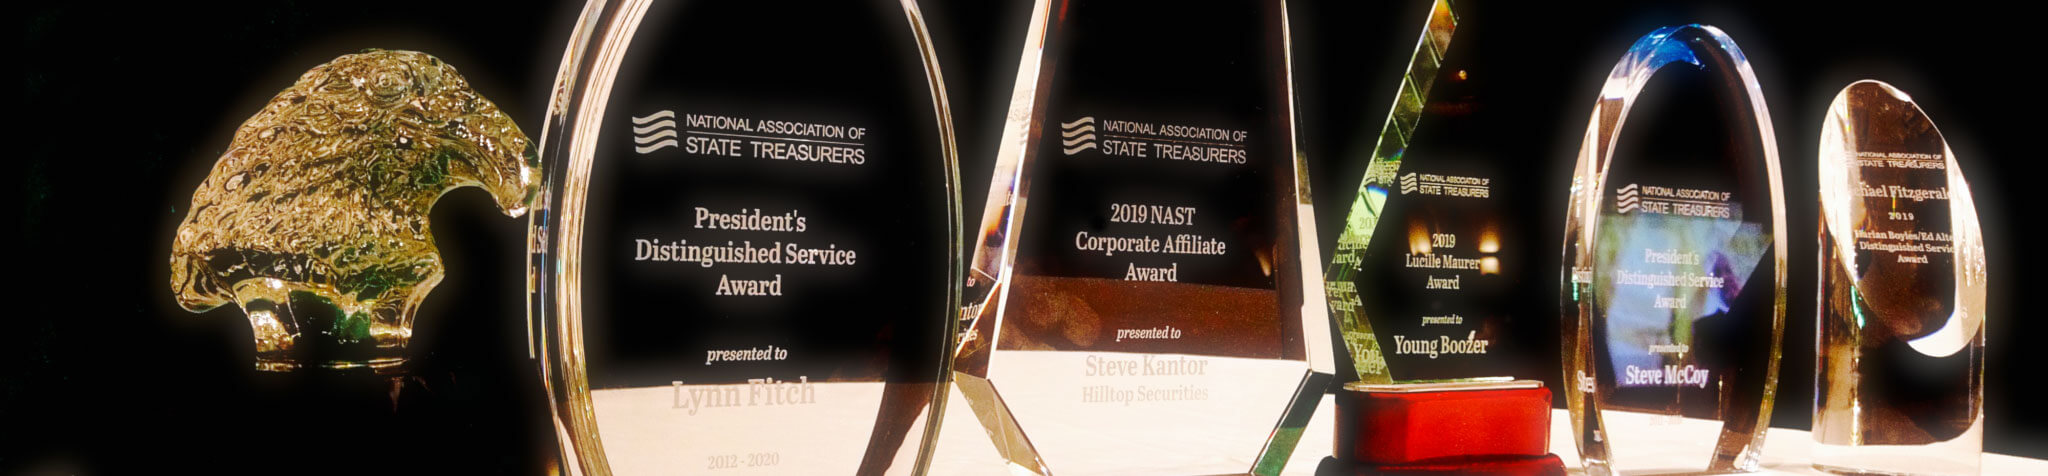 NAST awards on display